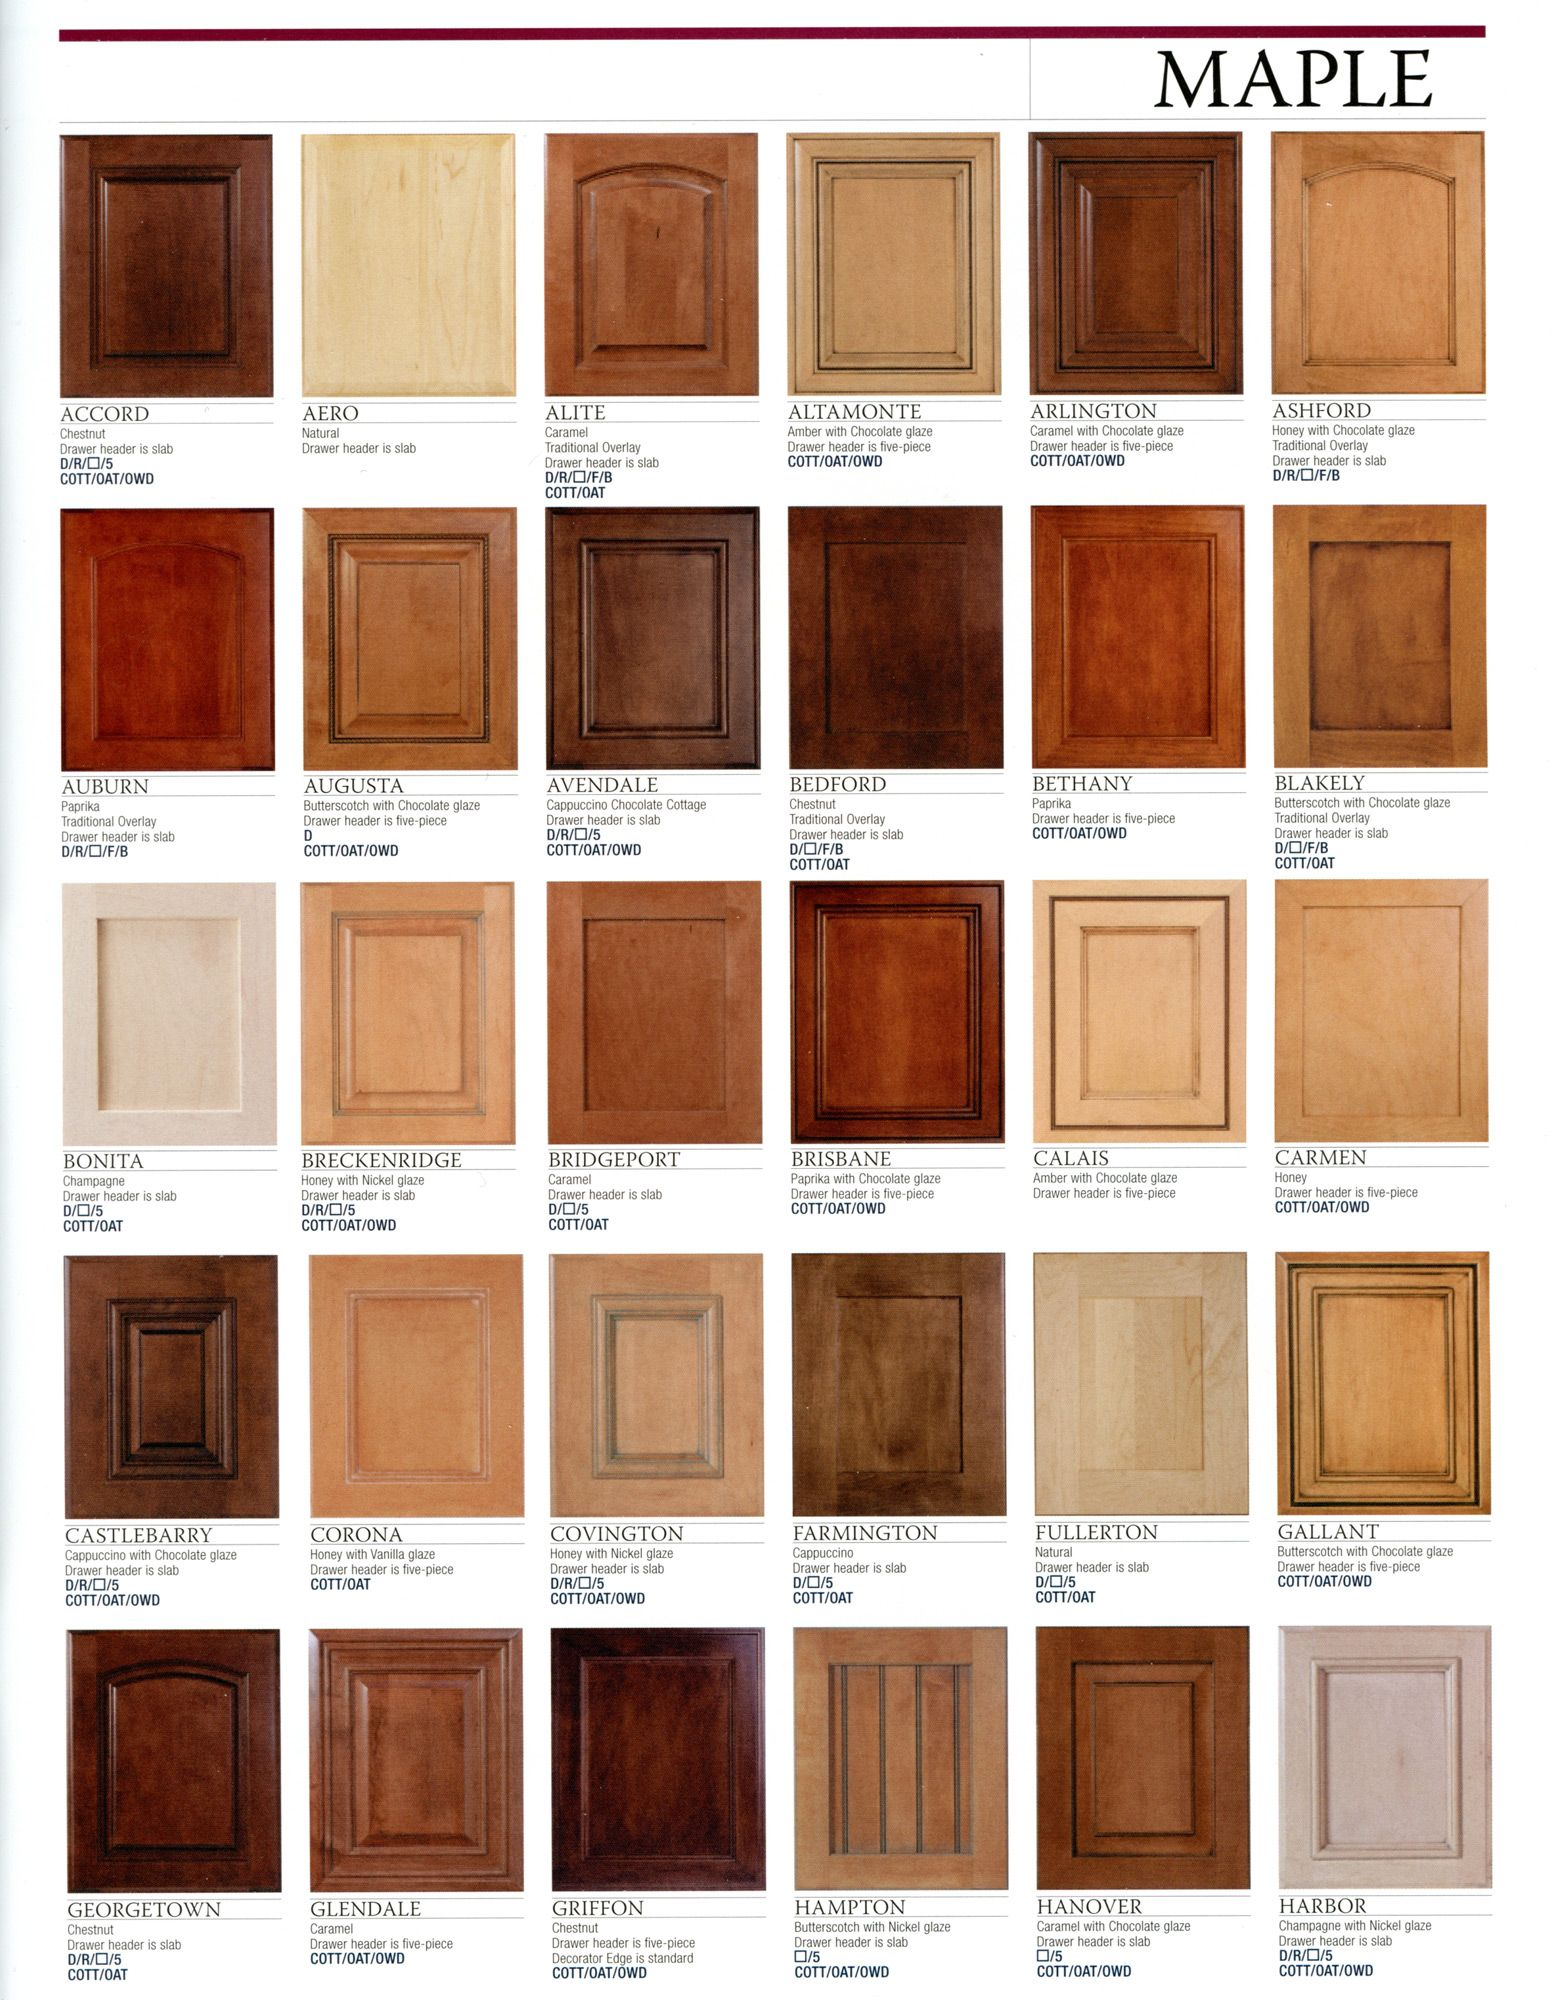 Starmark Maple1 Jpg 1552 2000 Farmington For Stain And Style I Like Abingdale Too Cabinet Stain Colors Staining Cabinets Wood Kitchen Cabinets